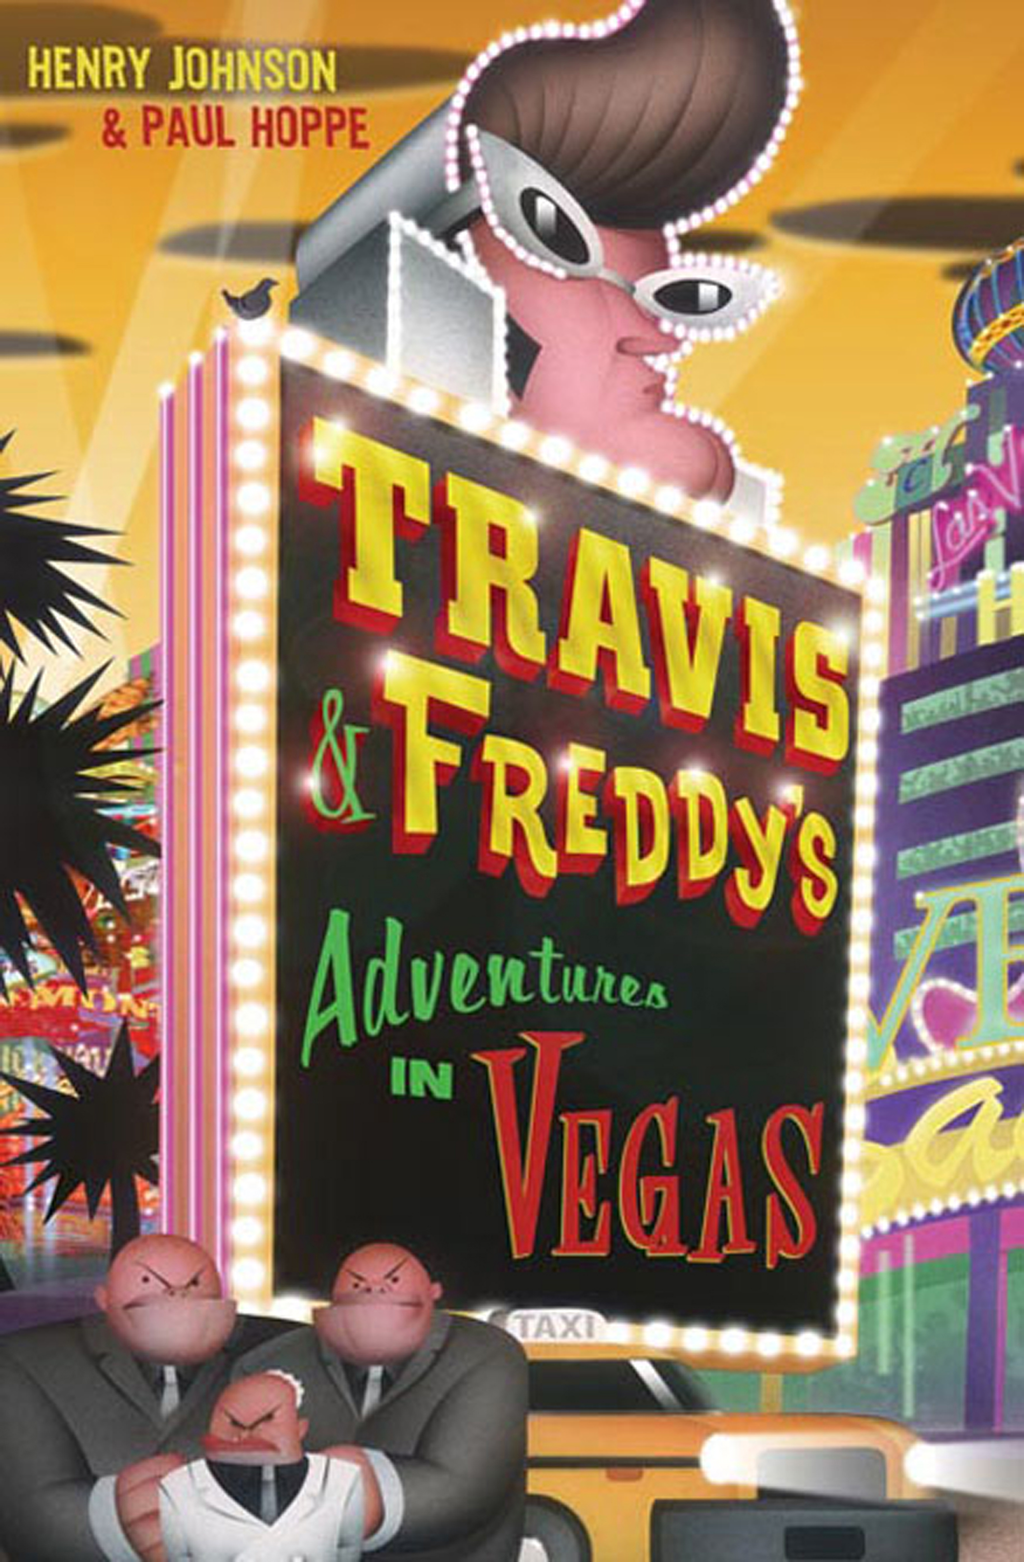 Travis & Freddy's Adventures in Vegas